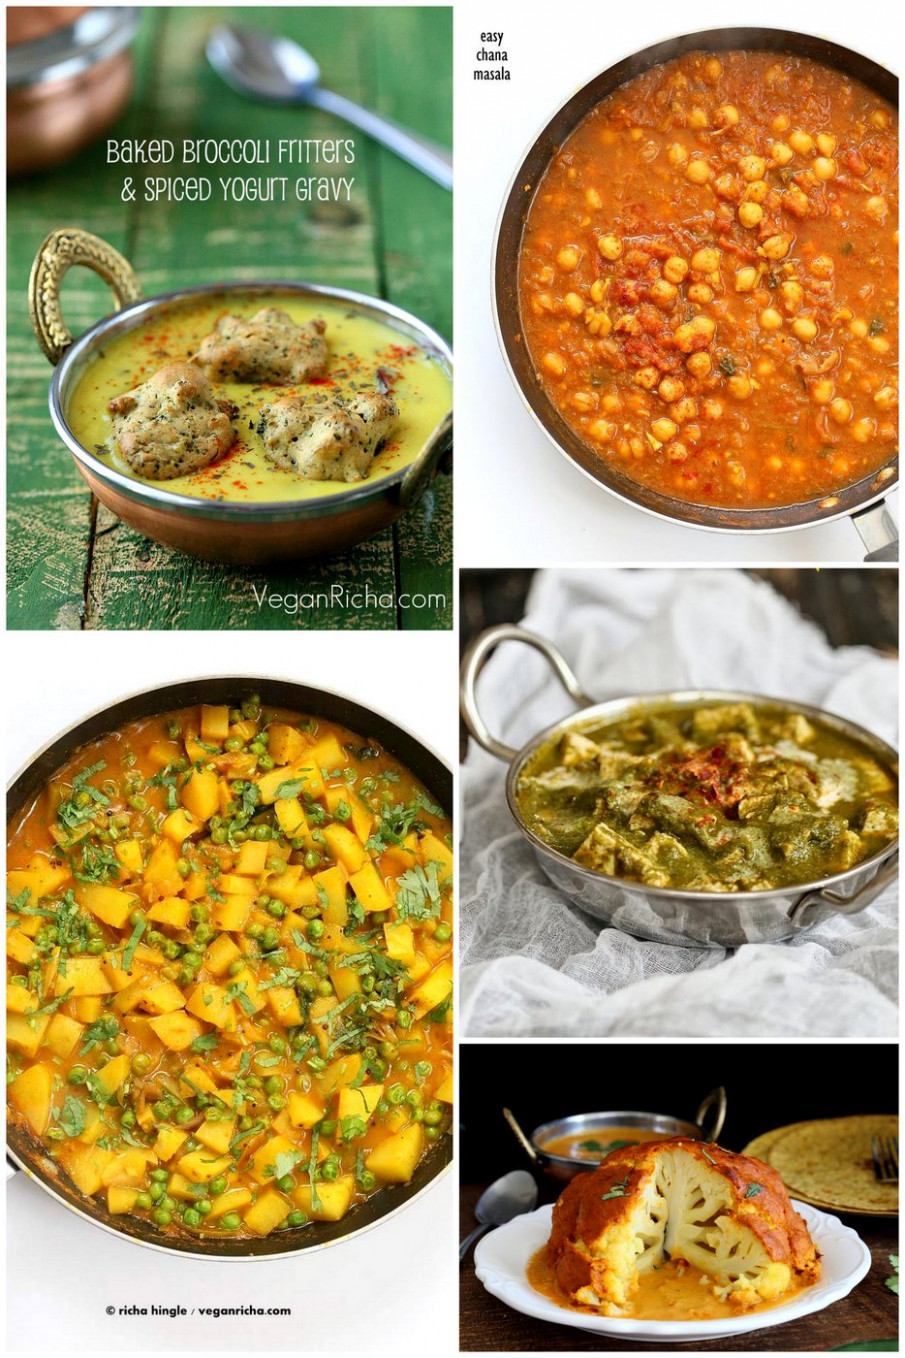 Popular Vegan Indian Curries & Entrees Recipes - Vegan Richa - easy indian recipes vegetarian